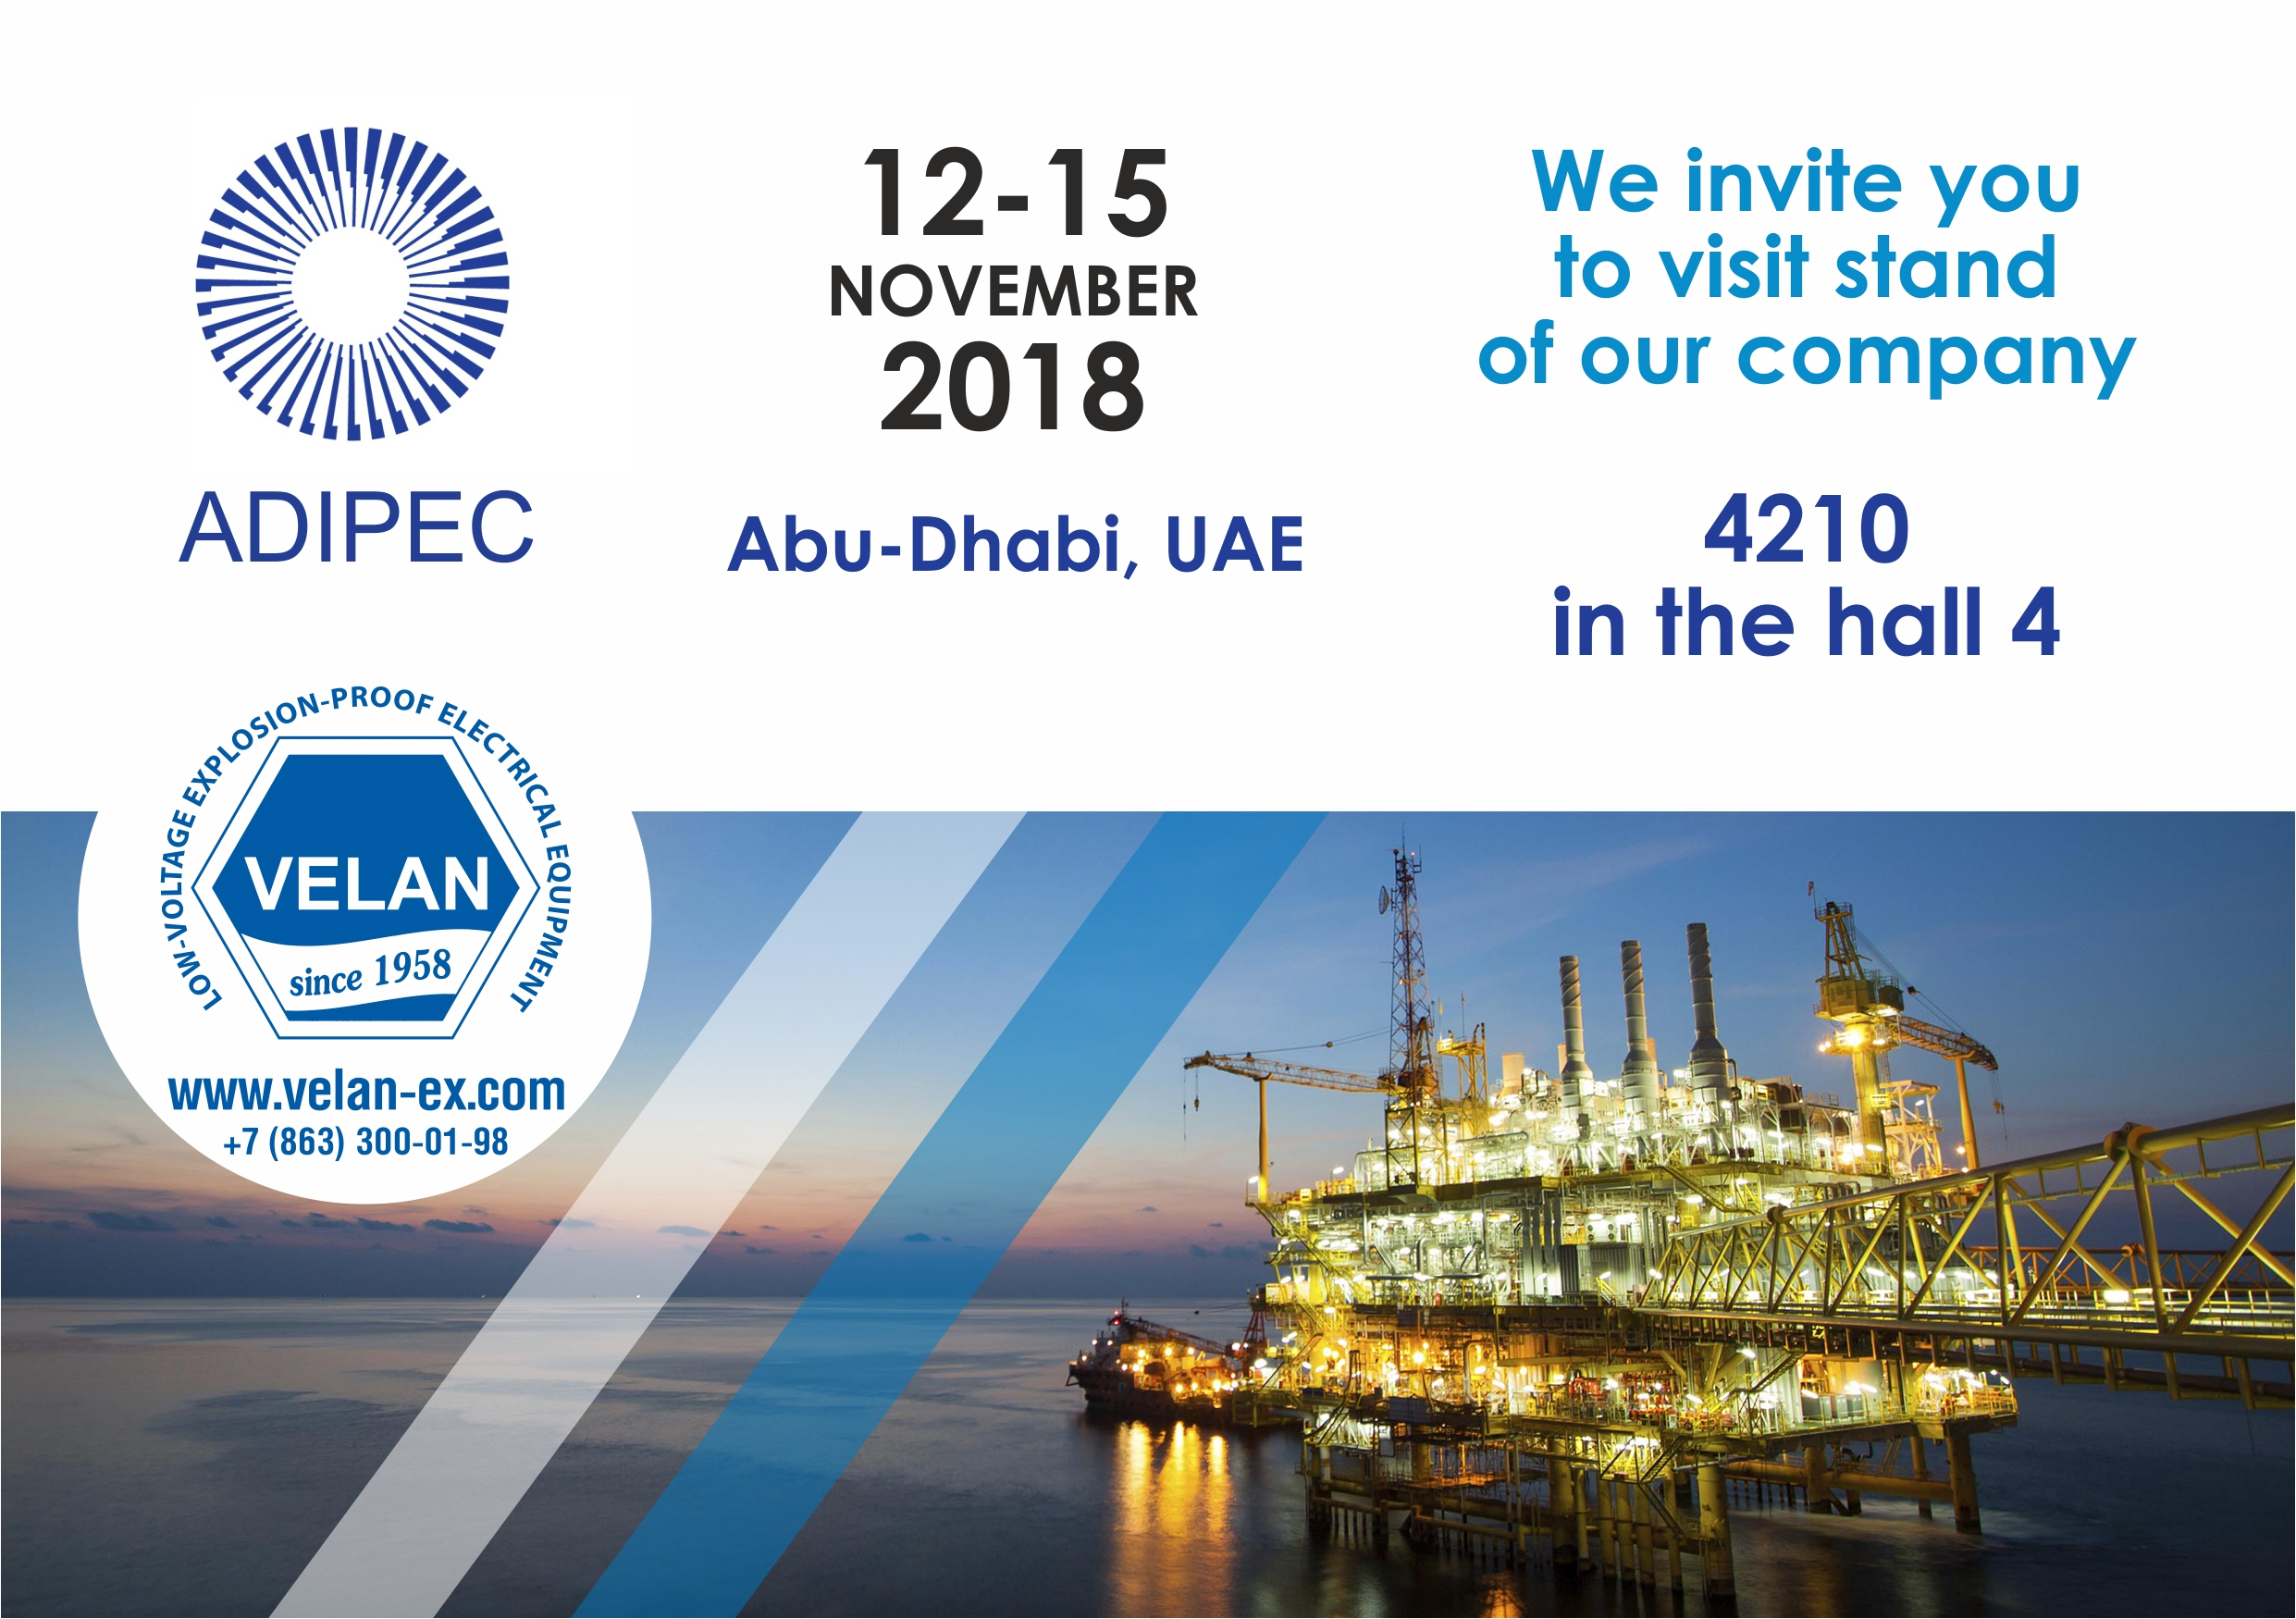 The 21st International Oil and Gas Exhibition and Conference ADIPEC-2018 Abu Dhabi from 12 to 15 of November.